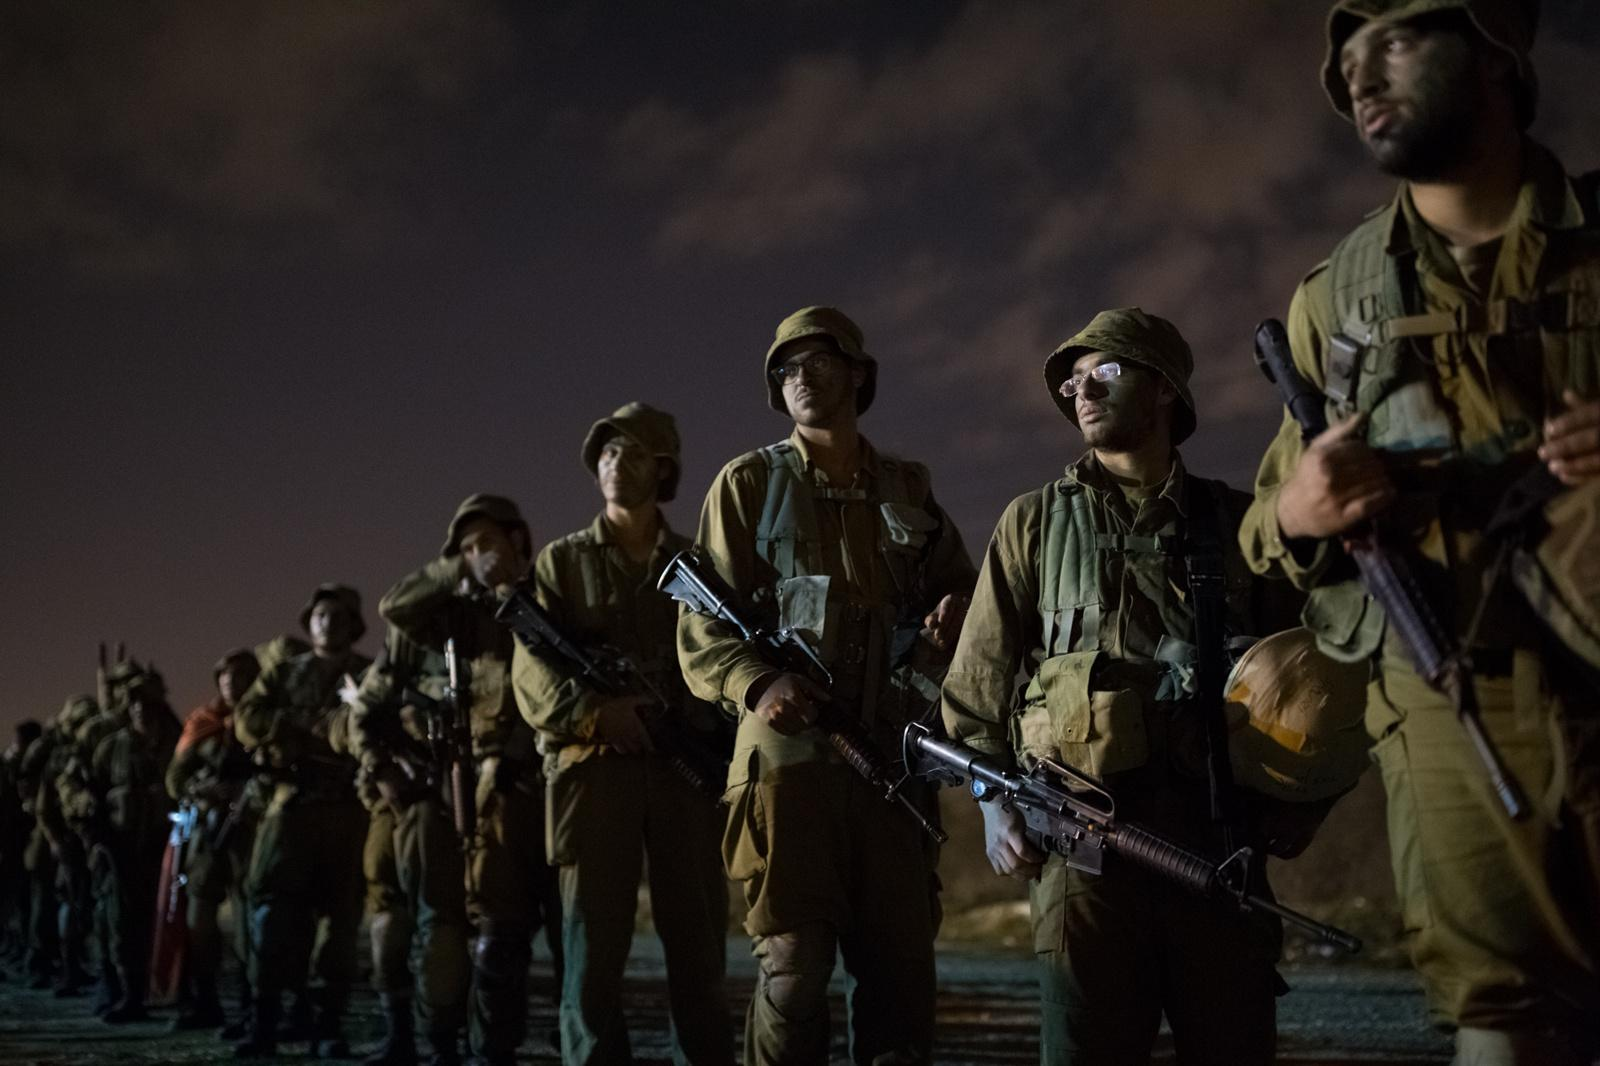 BINYAMINA, ISRAEL - MARCH 08, 2017: Soldiers from the Artillery Corps listen to their commander before taking part in a baret march at the end of their basic army training on March 08, 2017, near the Northern town of Binyamina, Israel. Around 600 soldiers participated in the march of around 25km, that lasted from midnight until the early morning hours.